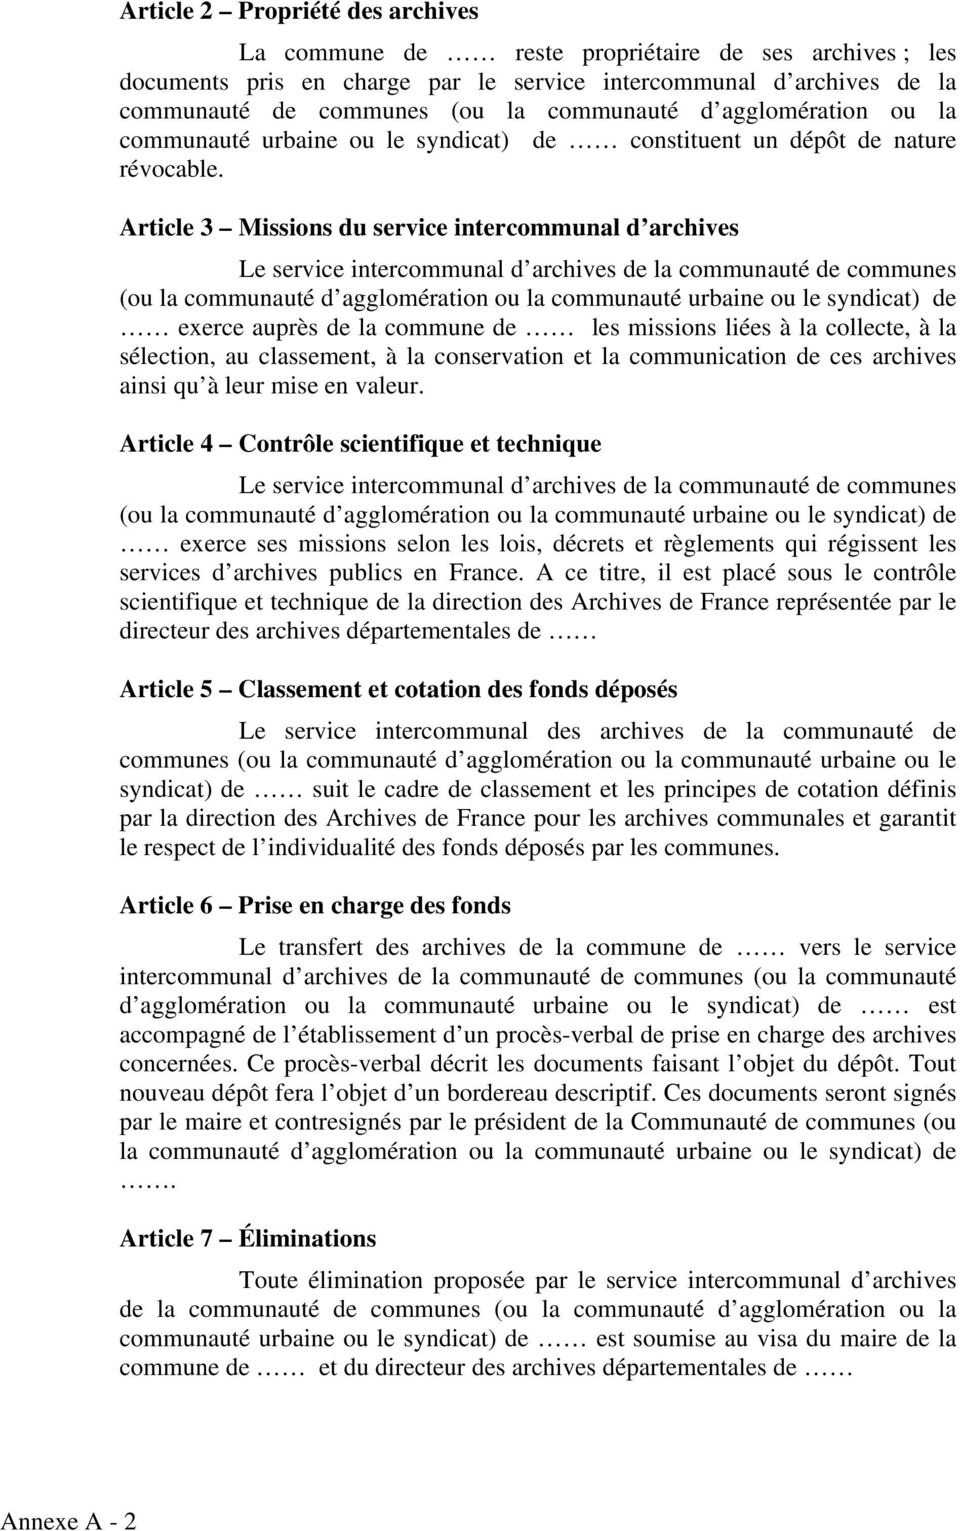 Article 3 Missions du service intercommunal d archives Le service intercommunal d archives de la communauté de communes (ou la communauté d agglomération ou la communauté urbaine ou le syndicat) de